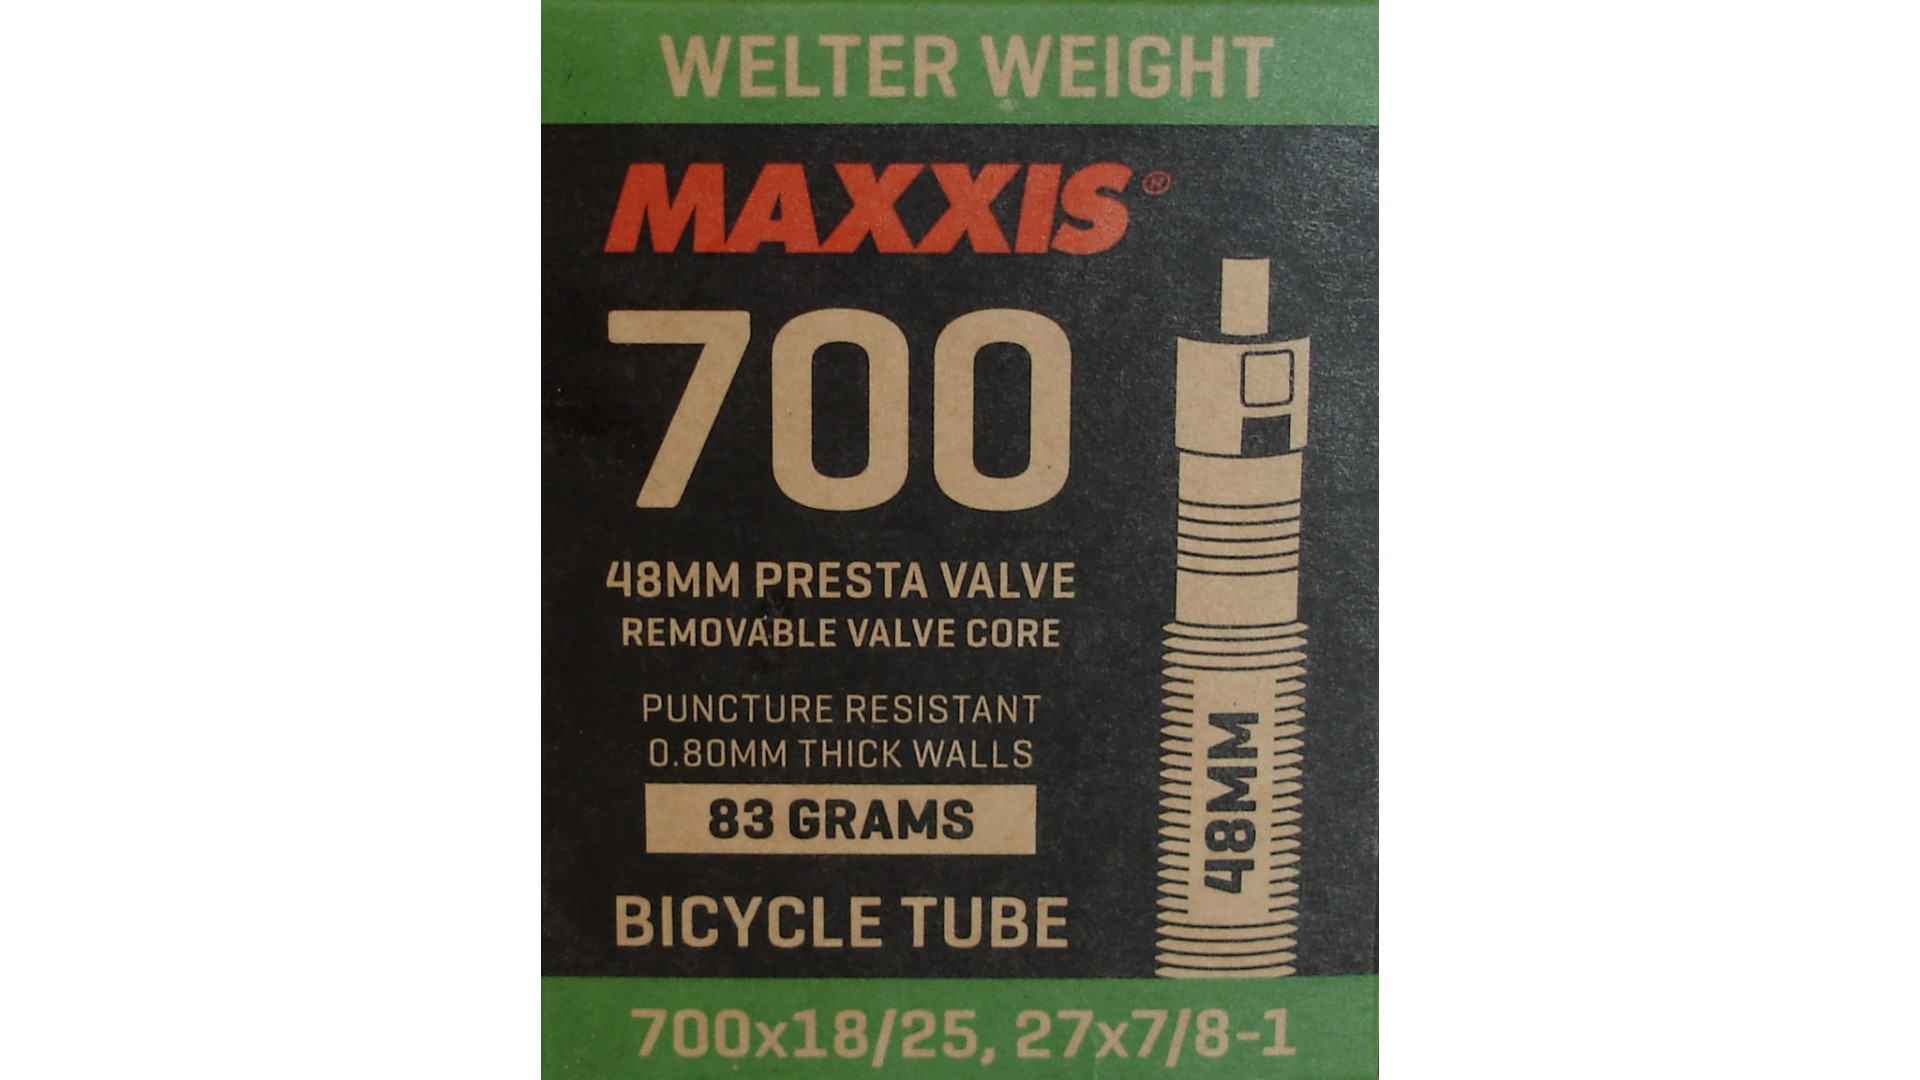 Камера Maxxis 700x18/25C, Welter Weight FV 60мм